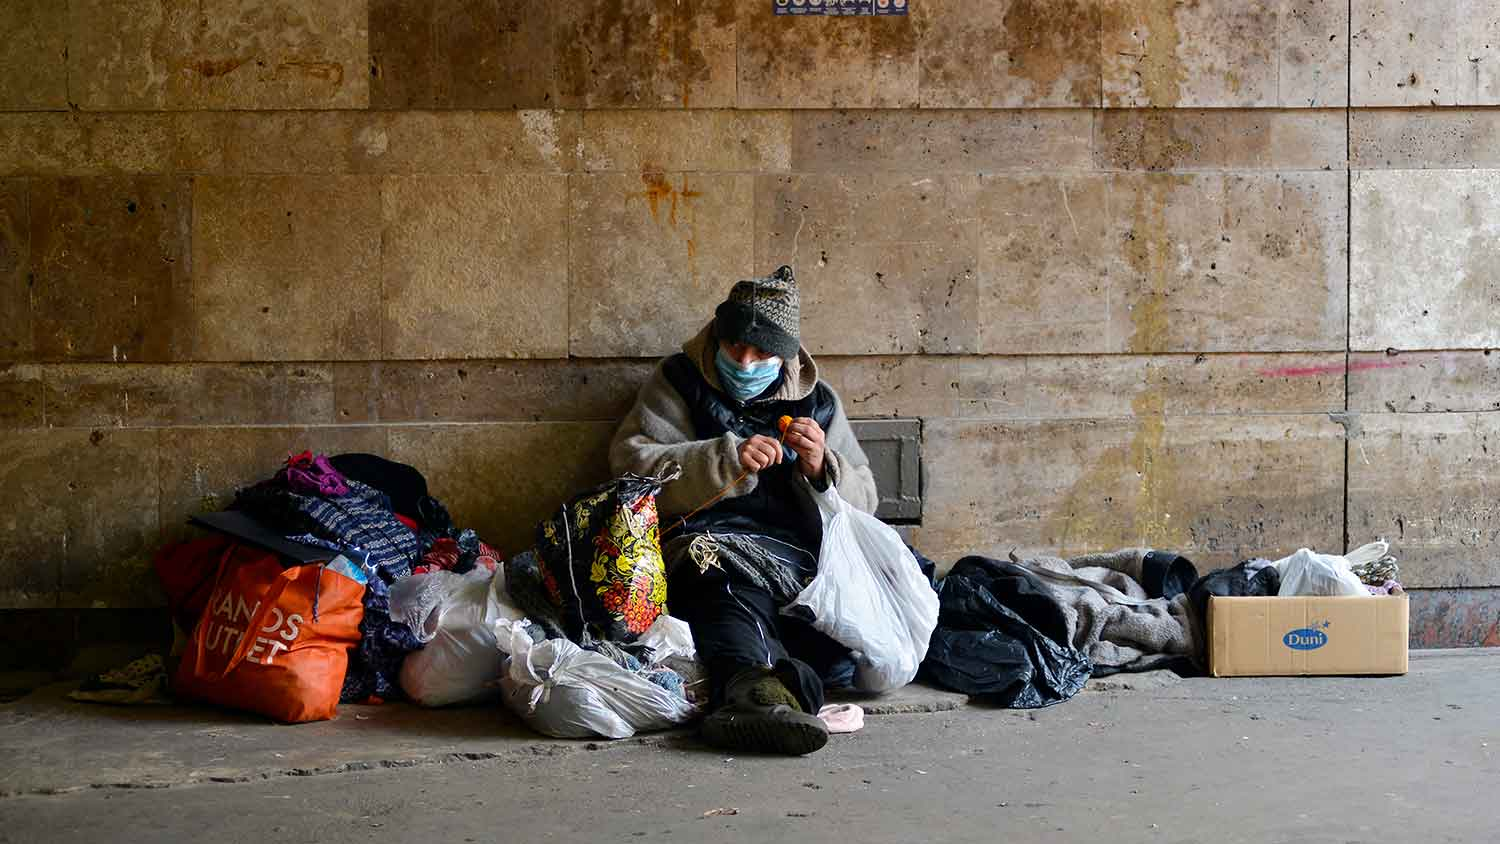 A homeless person sitting on a street surrounded by belongings